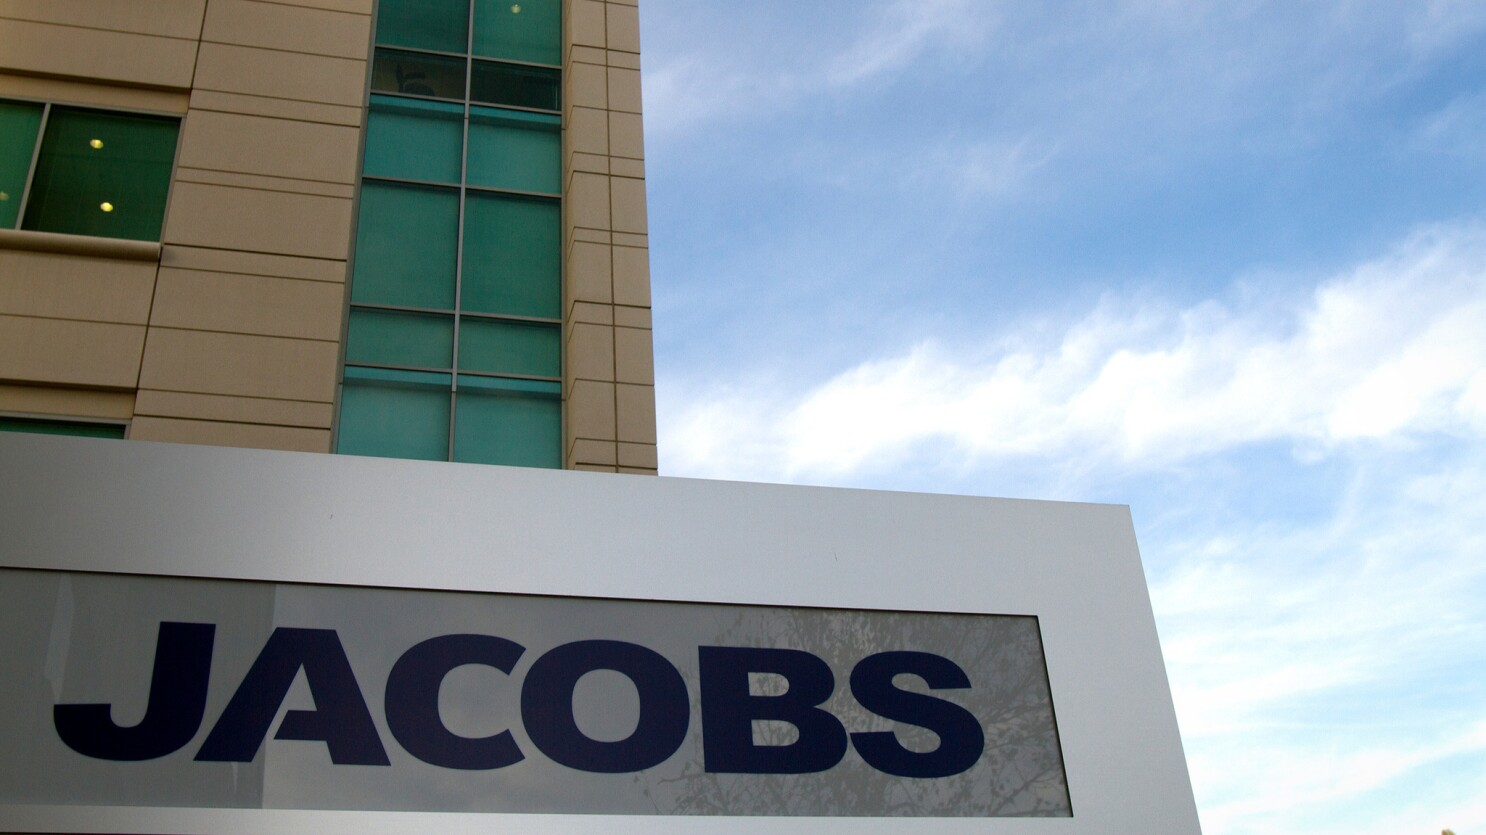 Jacobs Engineering Plans To Move Jobs From Pasadena To Texas Los Angeles Times